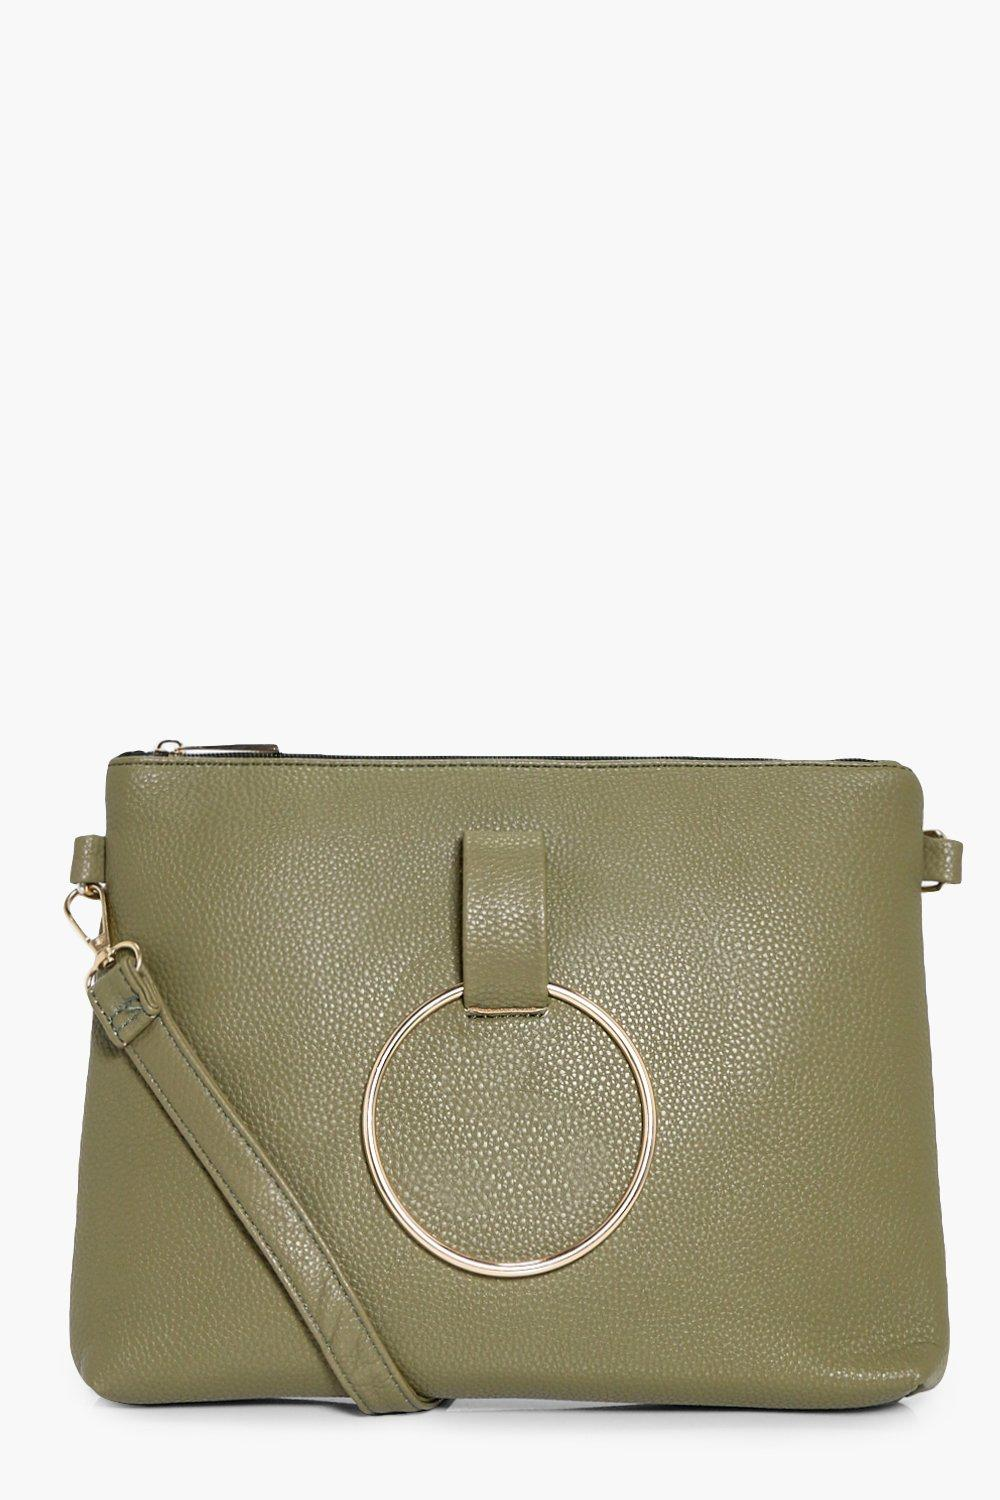 Loop Ring Detail Cross Body Bag - khaki - Nina Loo